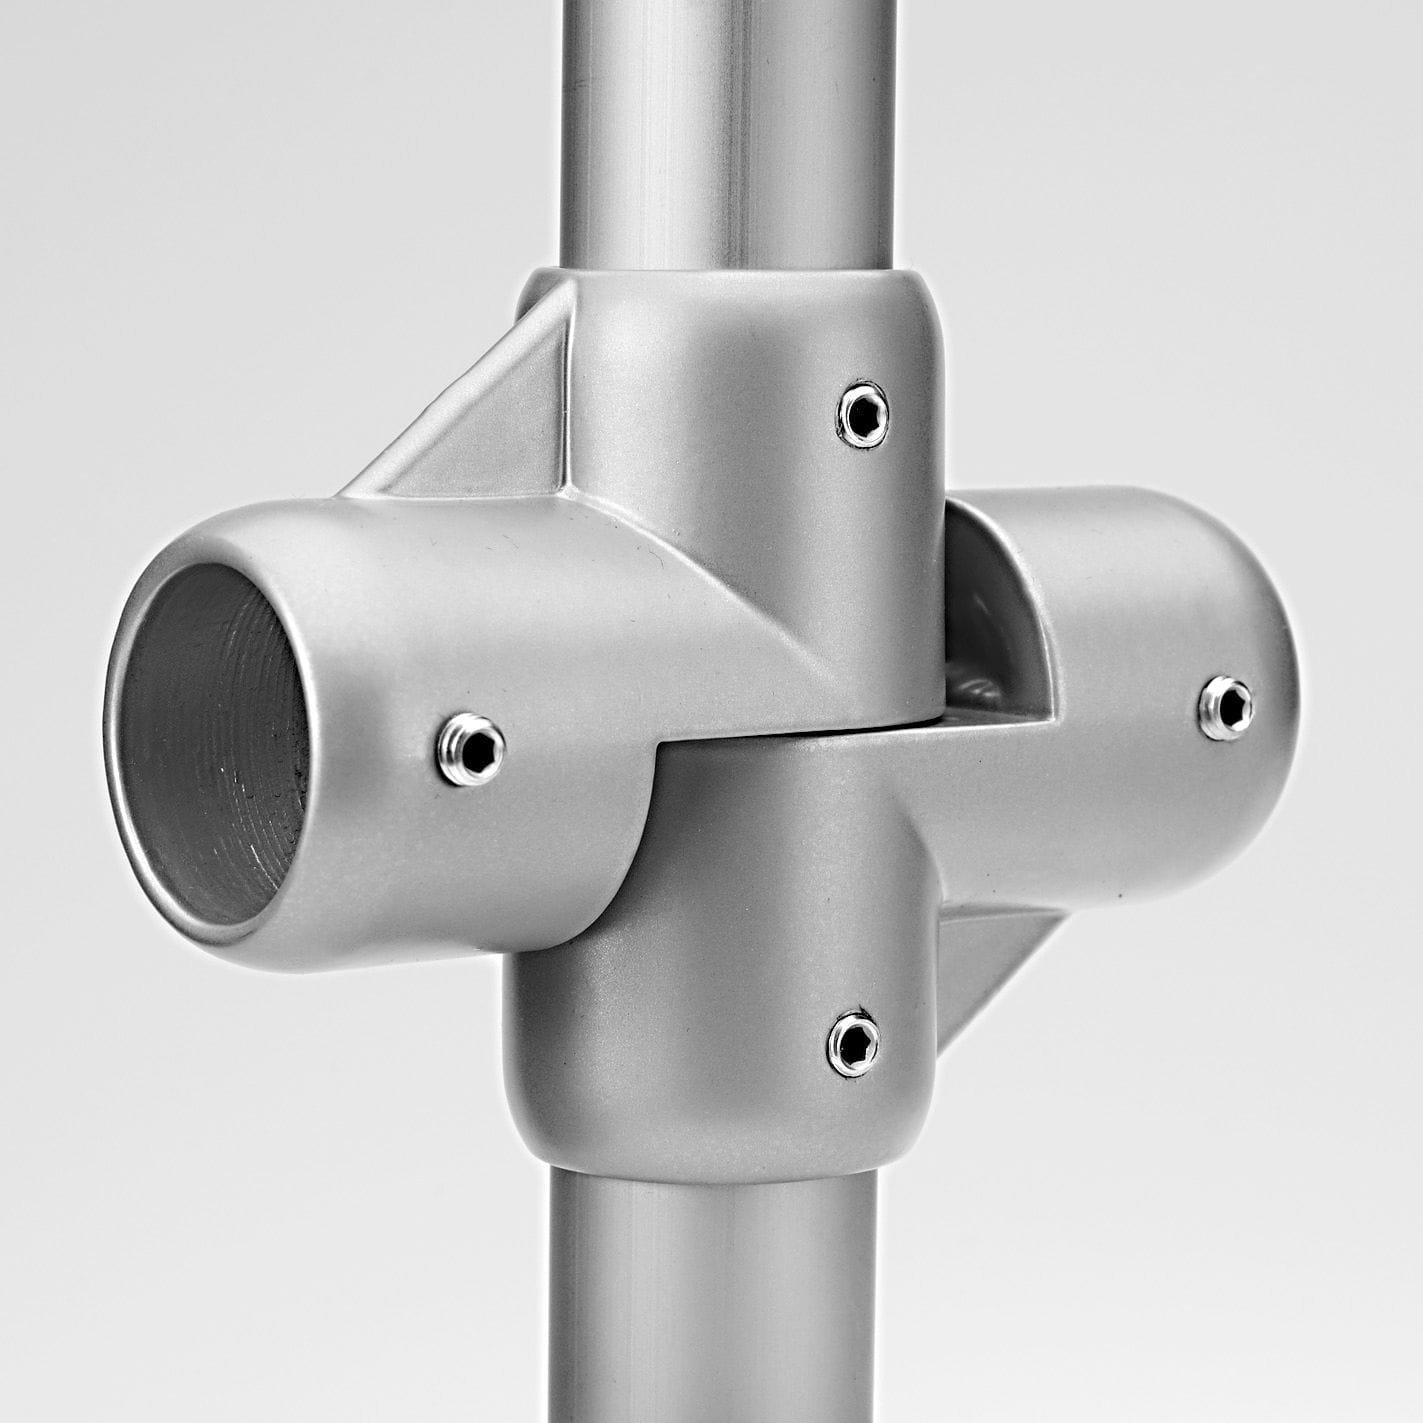 Aluminum pipes: the main characteristics of products from metal alloy 5